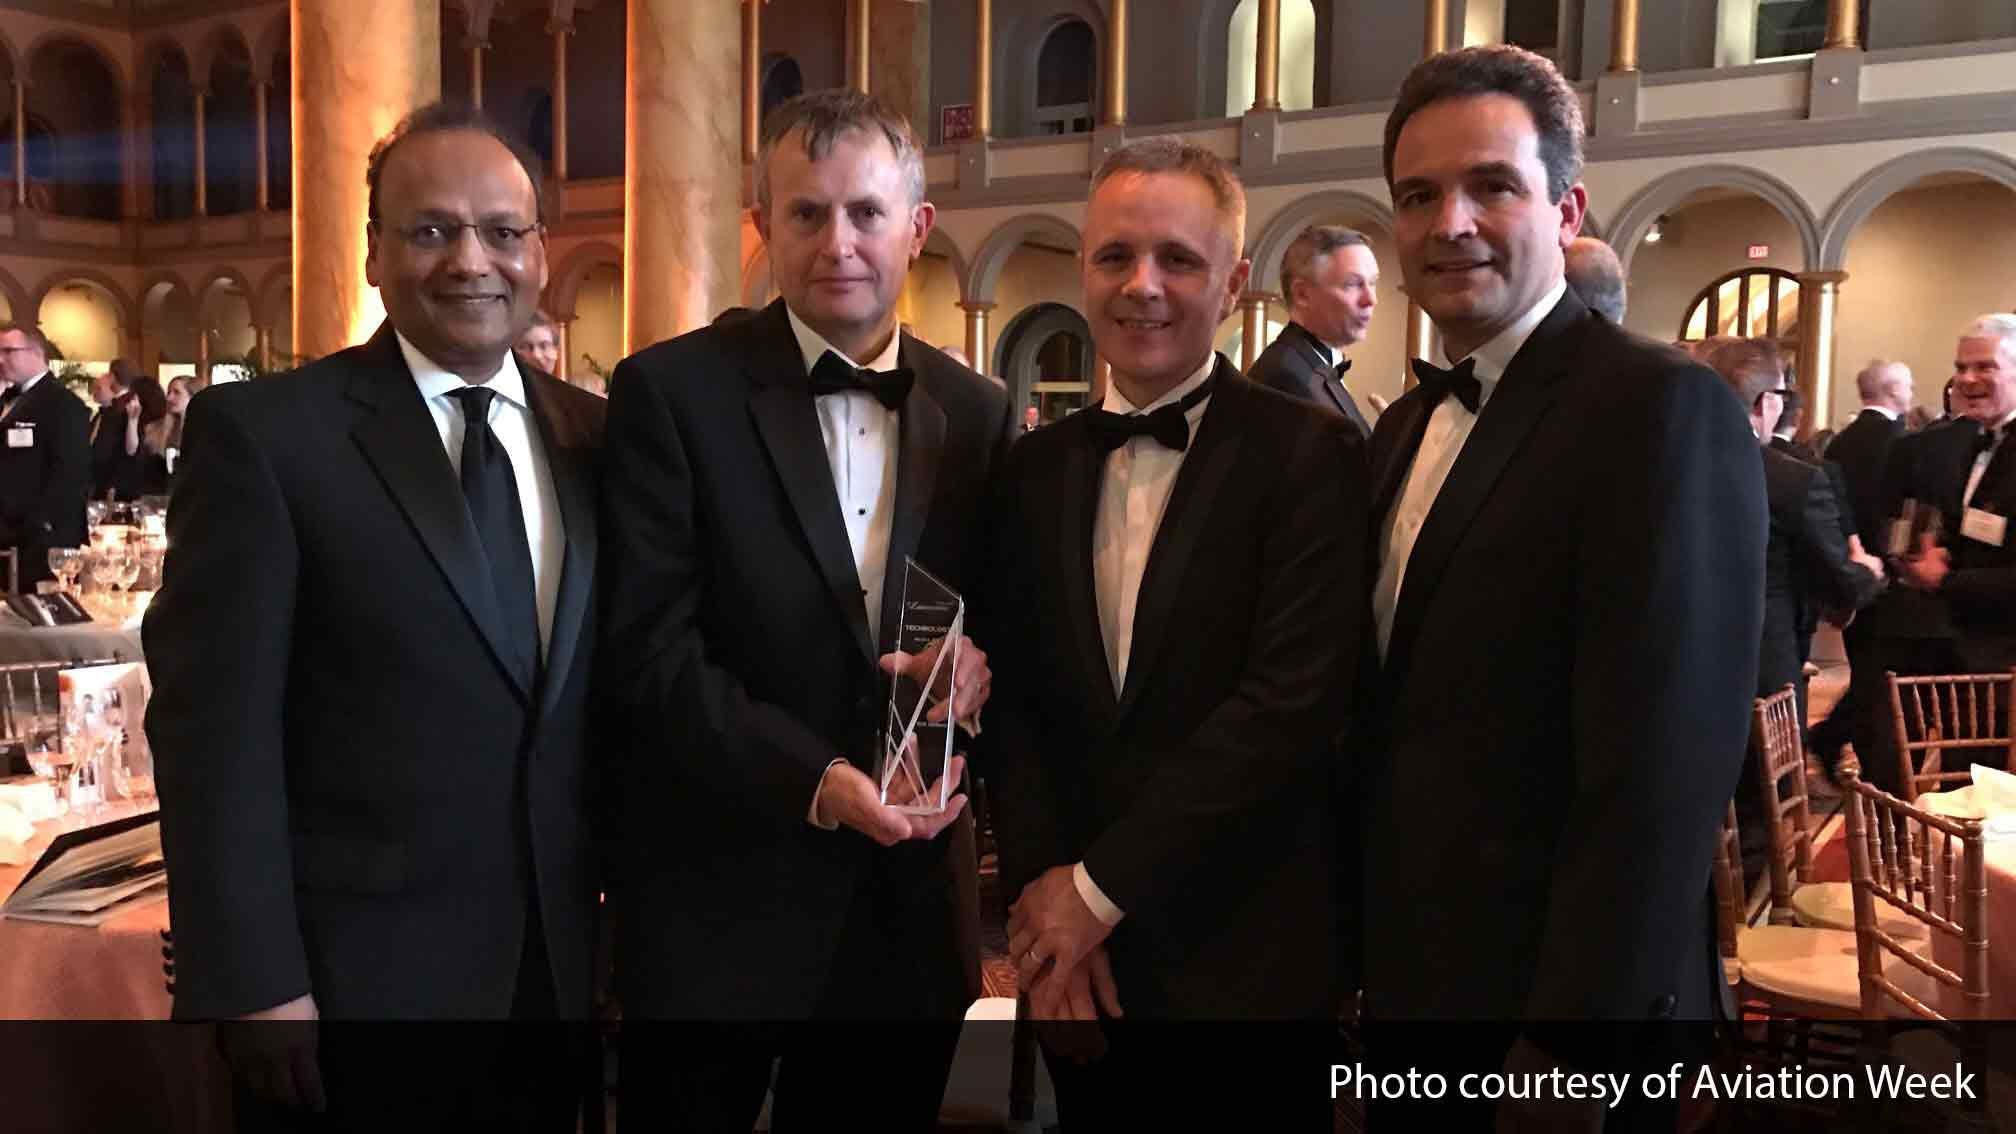 BAE Systems and Gulfstream were joint winners in the Technology category at Aviation Week 60th Annual Laureate Awards